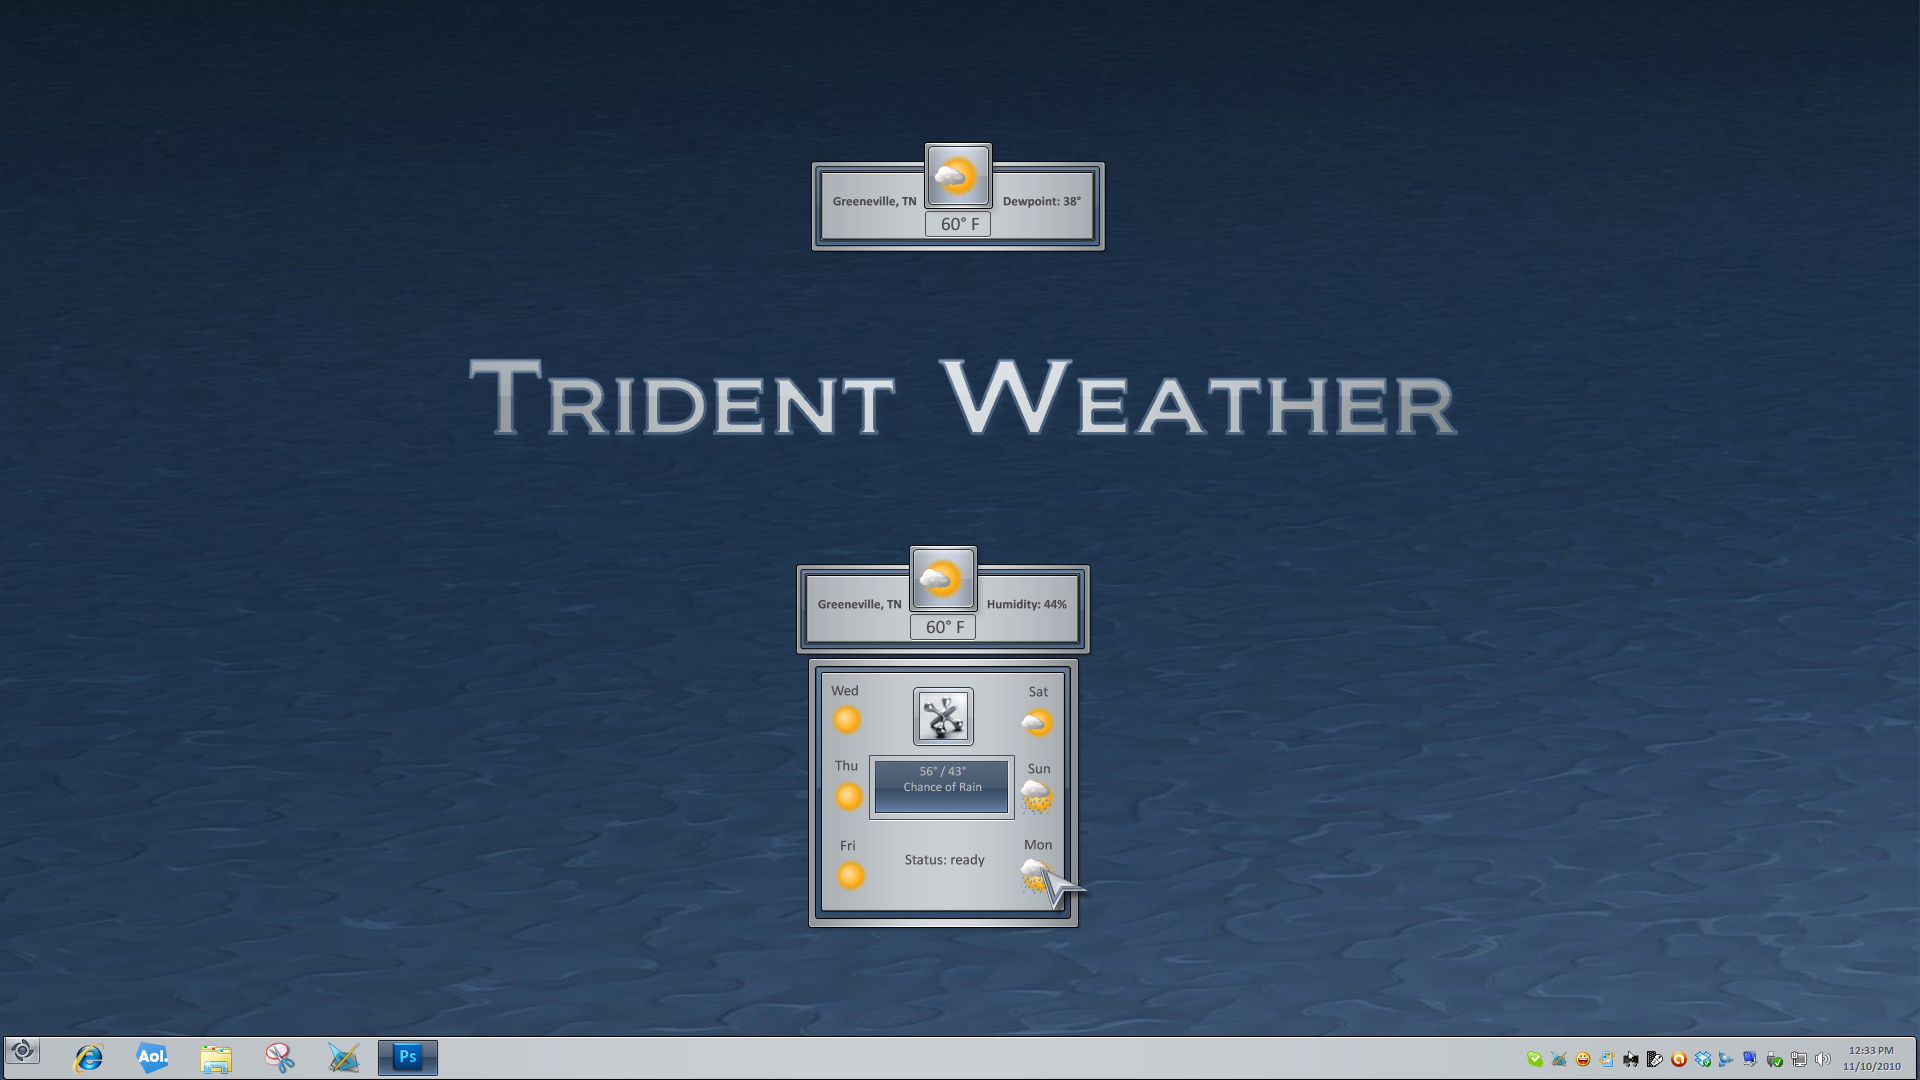 Trident Weather Gadget